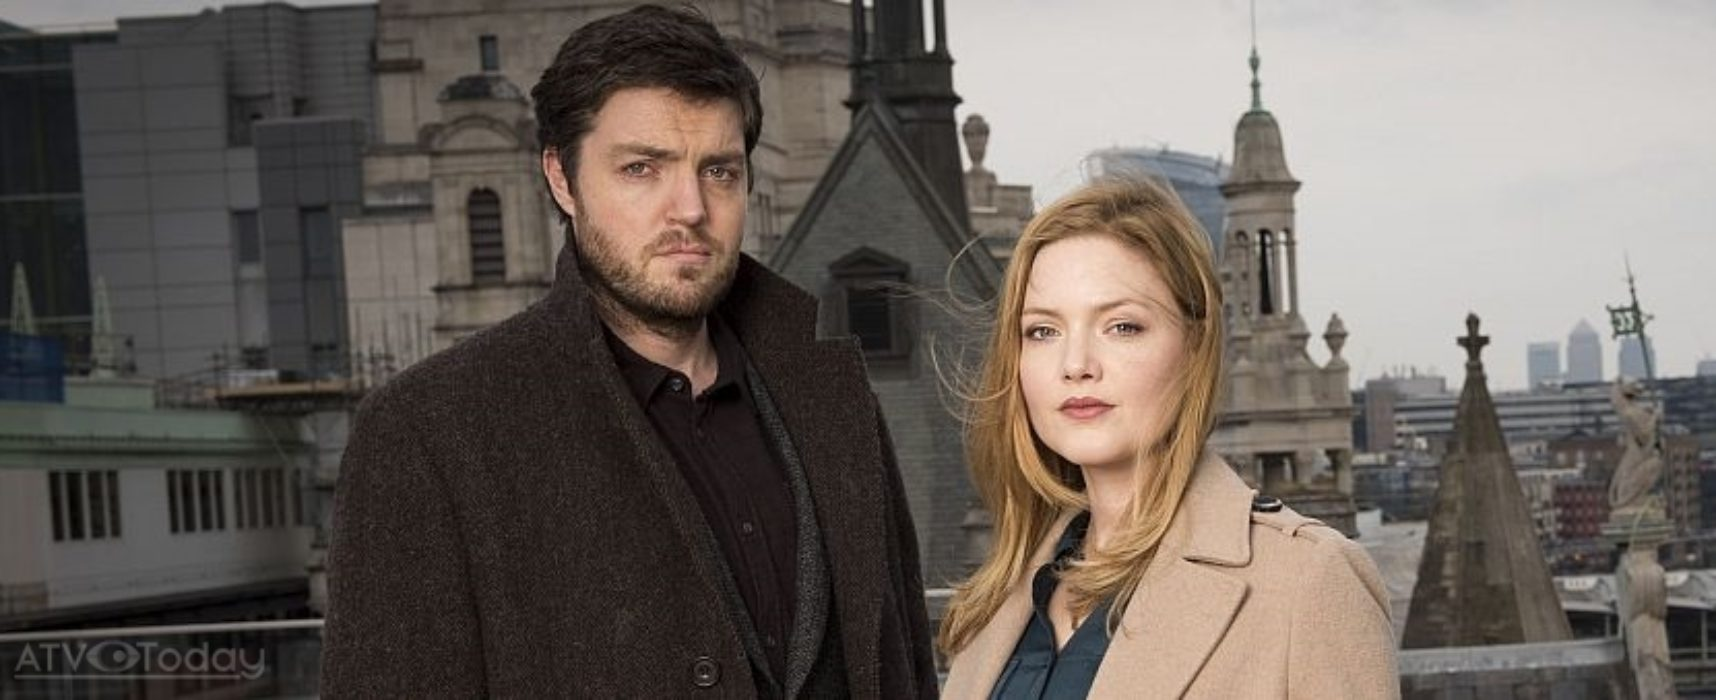 The Strike Series to return to BBC One in 2018